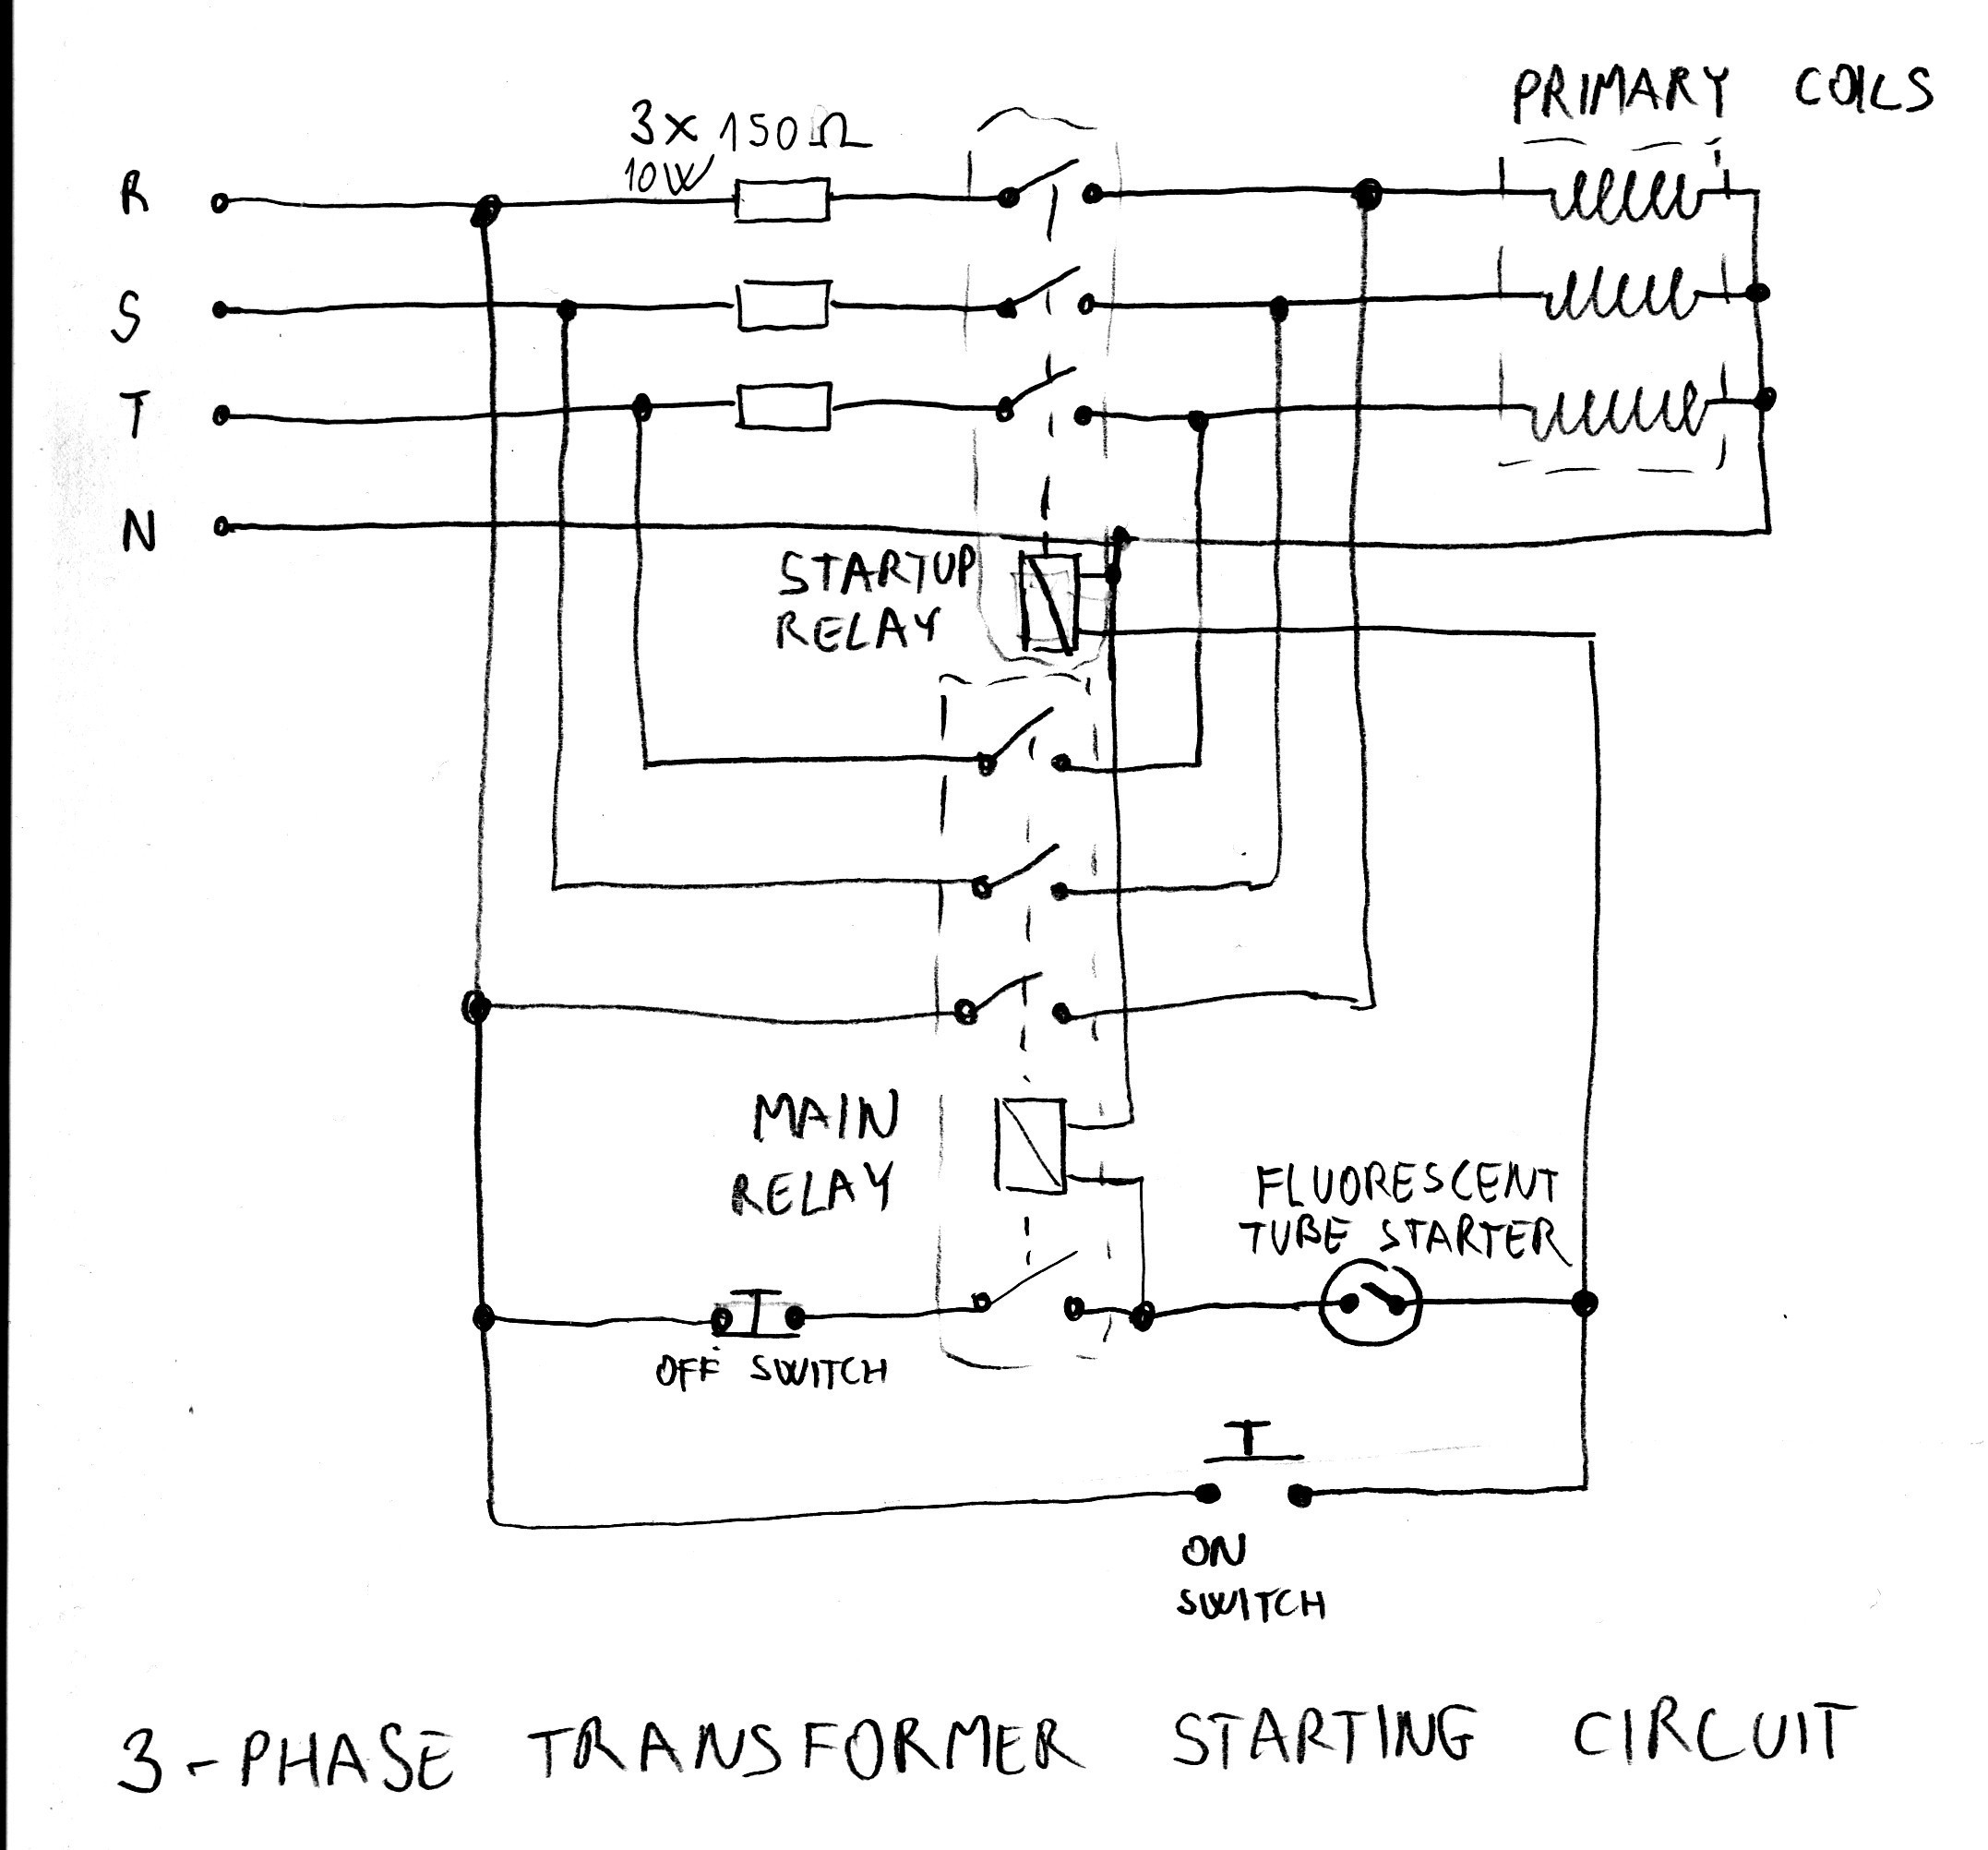 Powerstat Wiring Diagram Sample